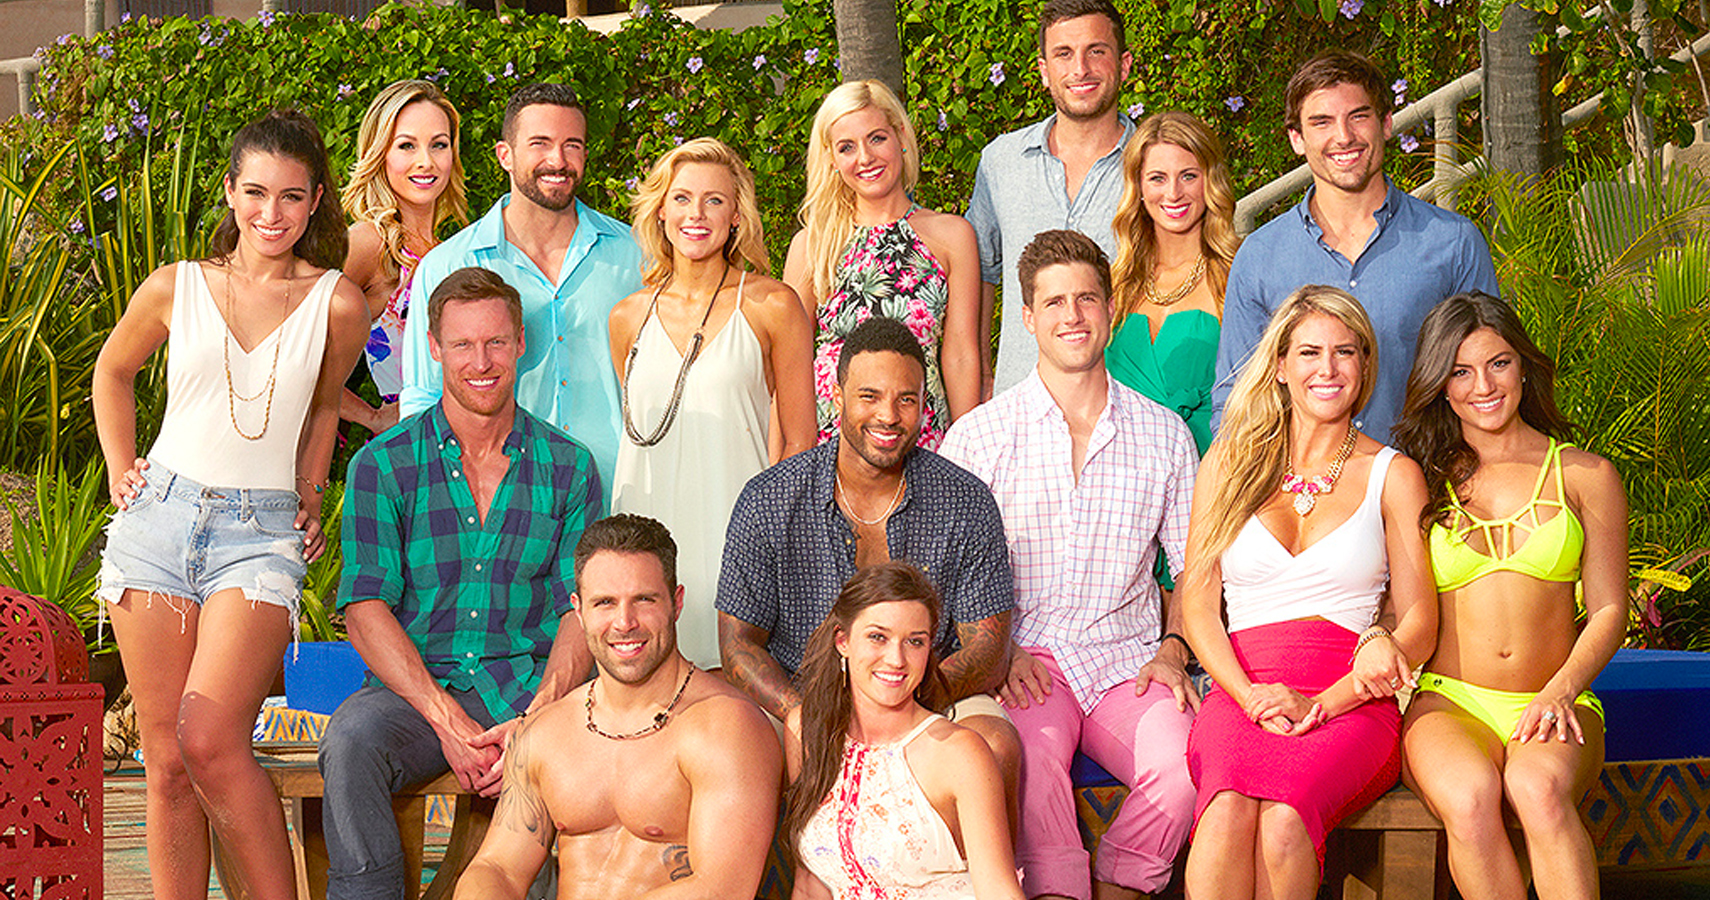 bachelor in paradise - photo #36